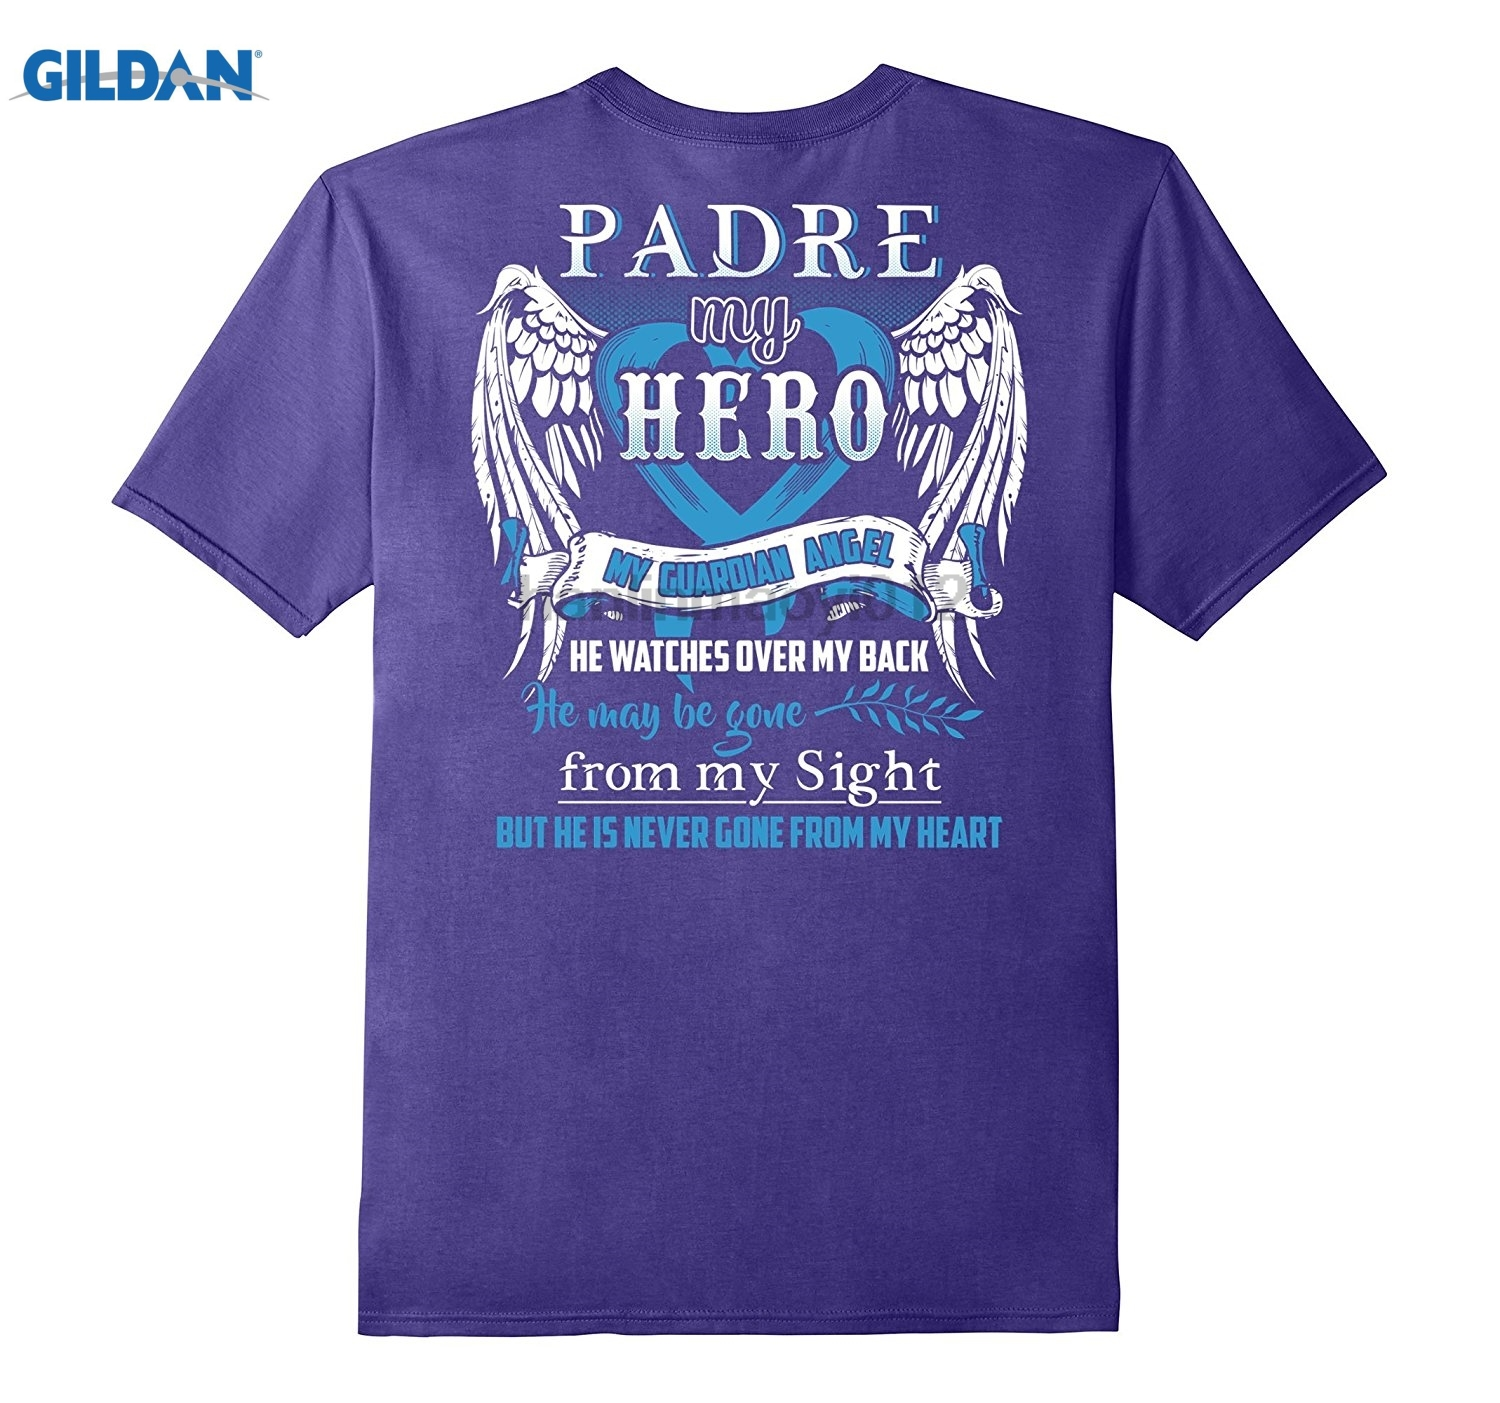 GILDAN Papa is my guardian angel shirt-Papa in heaven T-Shirt dress T-shirt